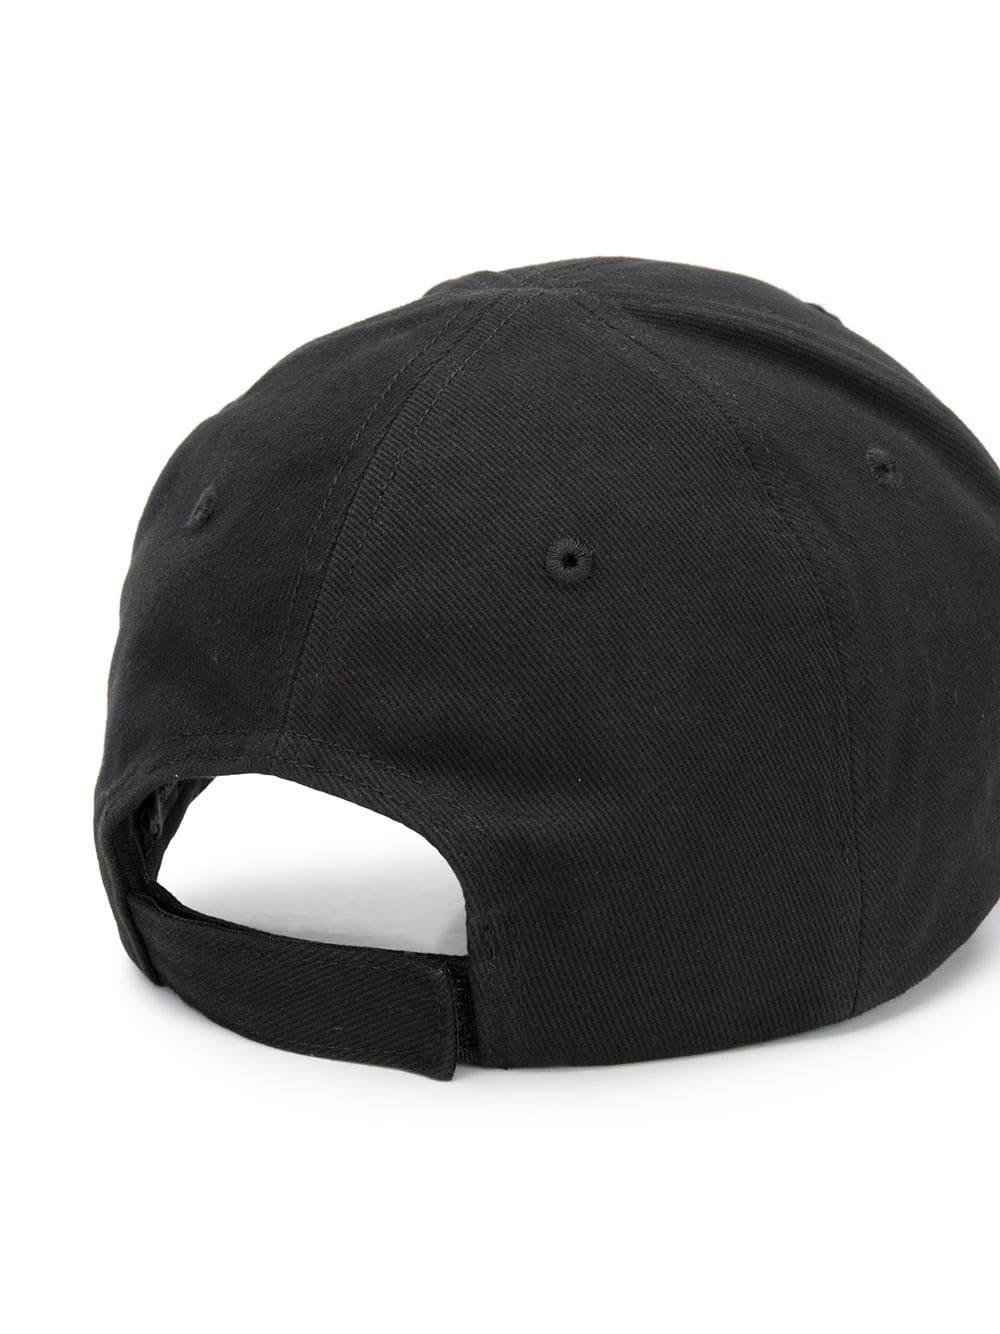 6a8f697029f Balenciaga - Black Logo Embroidered Cotton Cap for Men - Lyst. View  fullscreen